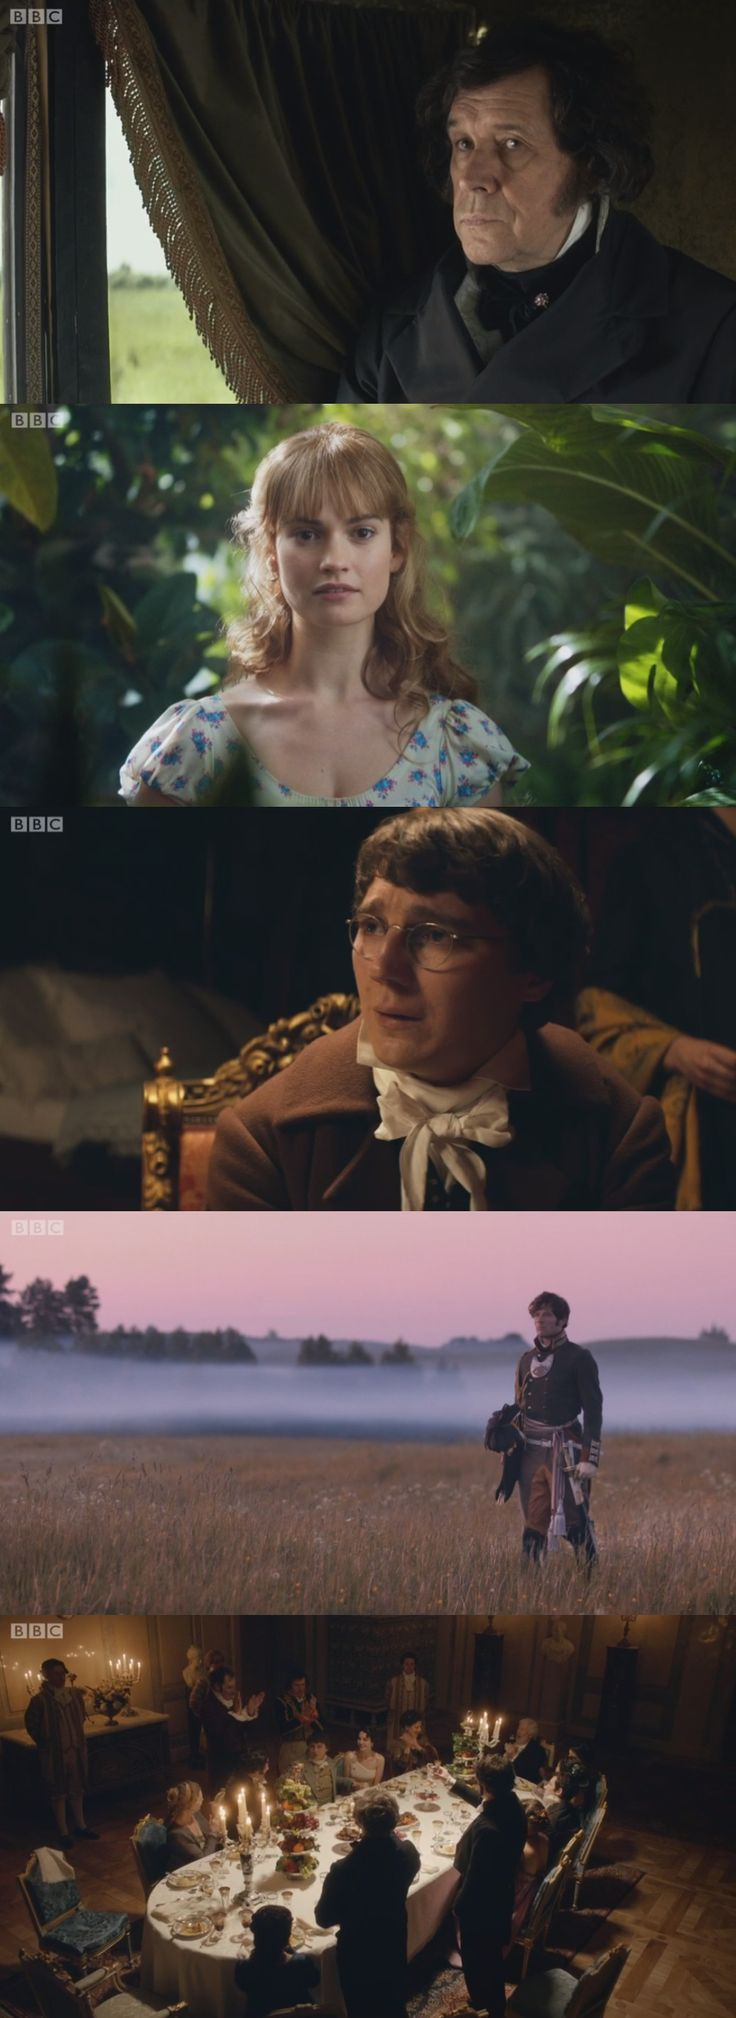 War and Peace (BBC, 2016) - Stephen Rea, Lily James, Paul Dano, James Norton